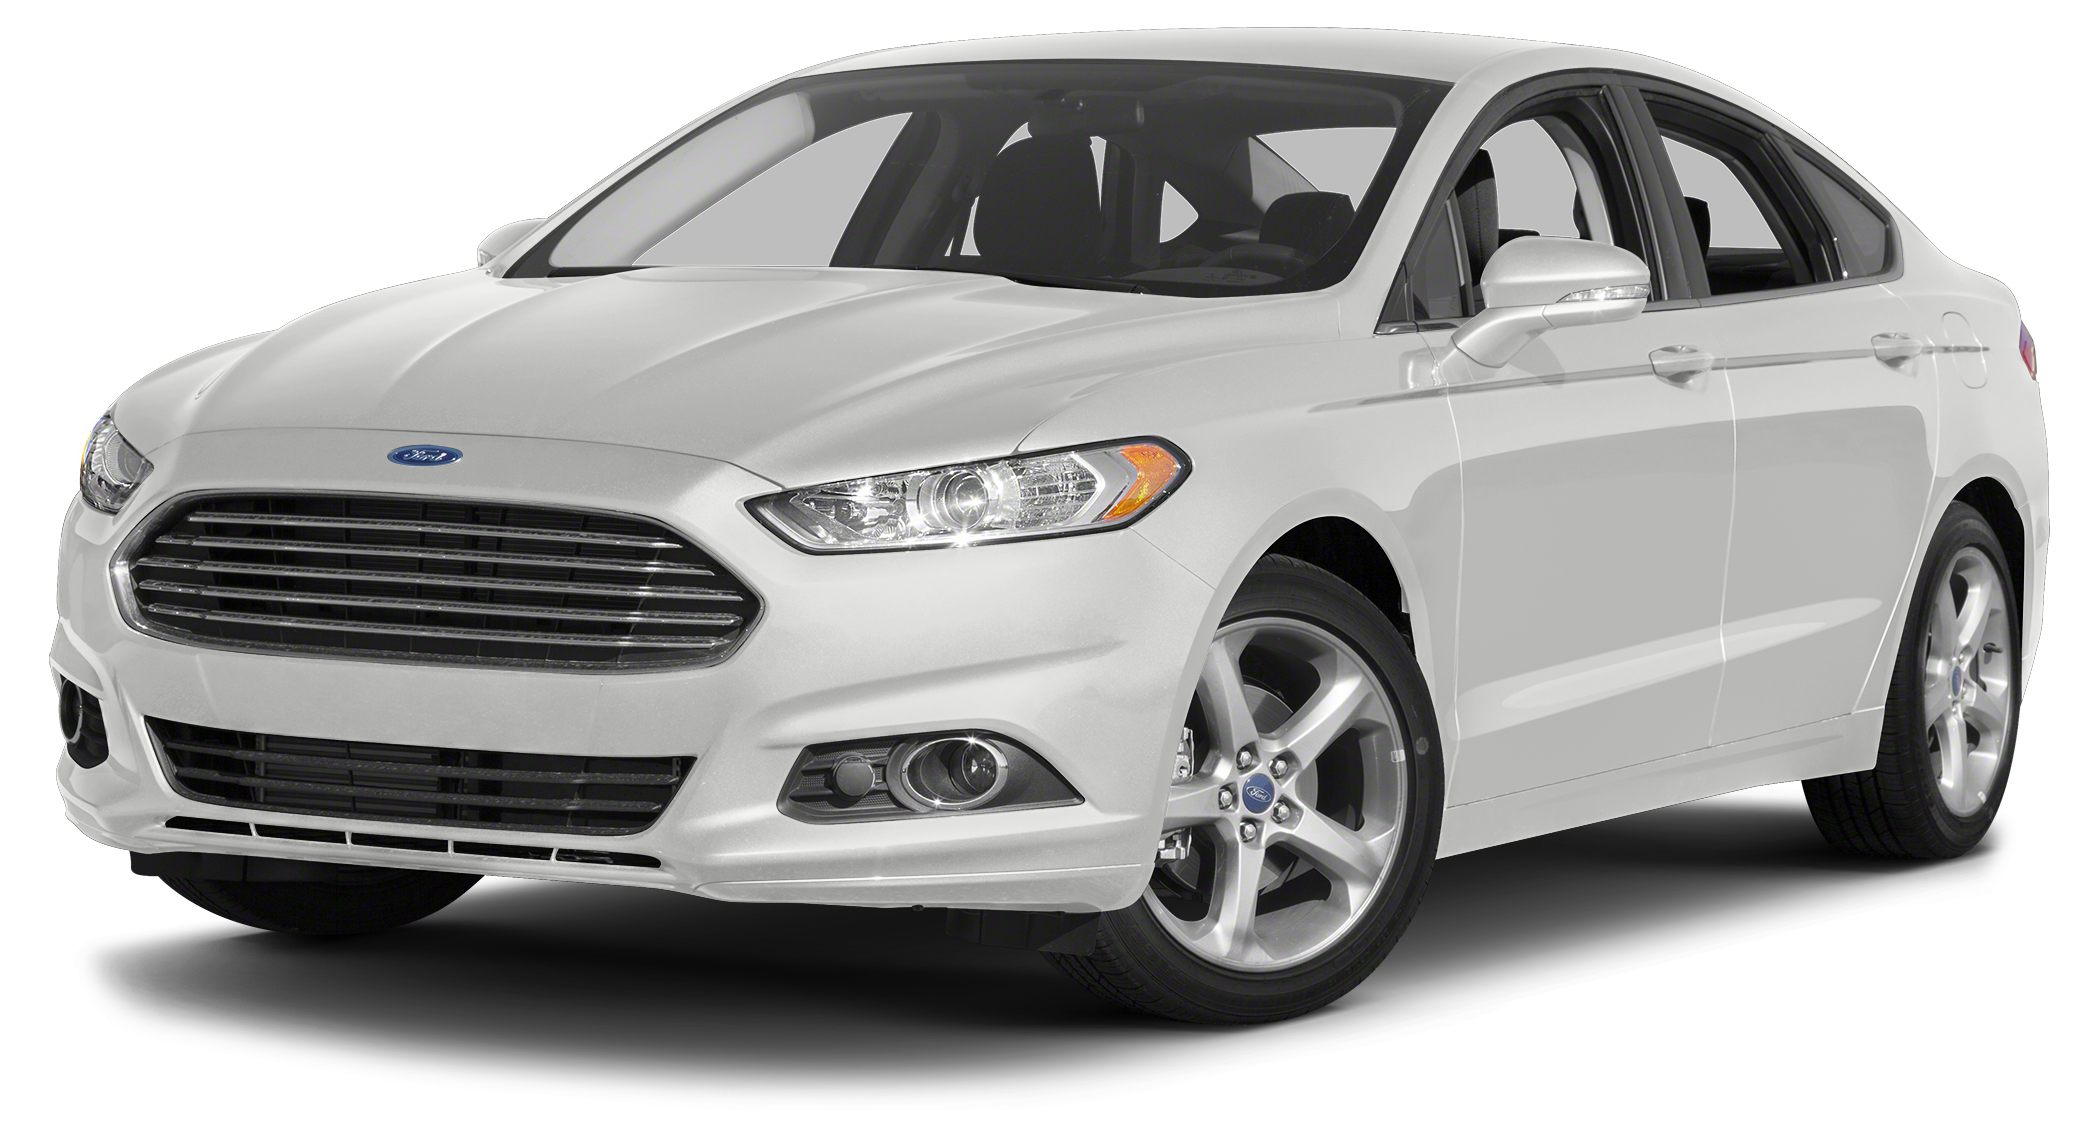 2016 Ford Fusion SE The Ford Fusion has the upscale style and front grille that resemble higher-pr